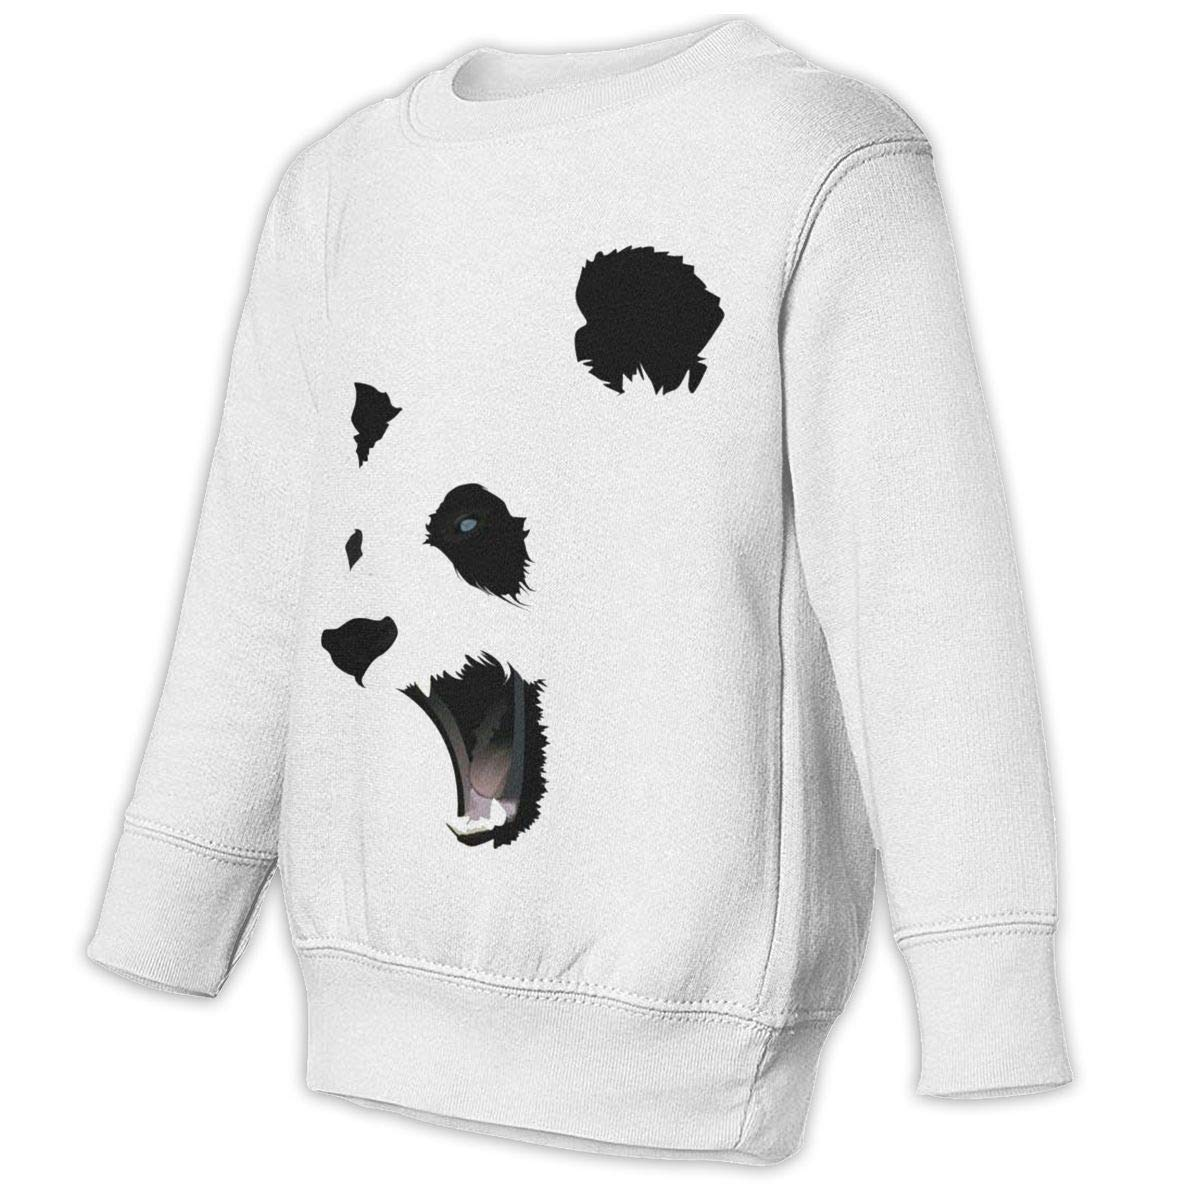 GHYNJUM Panda Kids Unisex Cotton Long Sleeve Round Neck Pullover